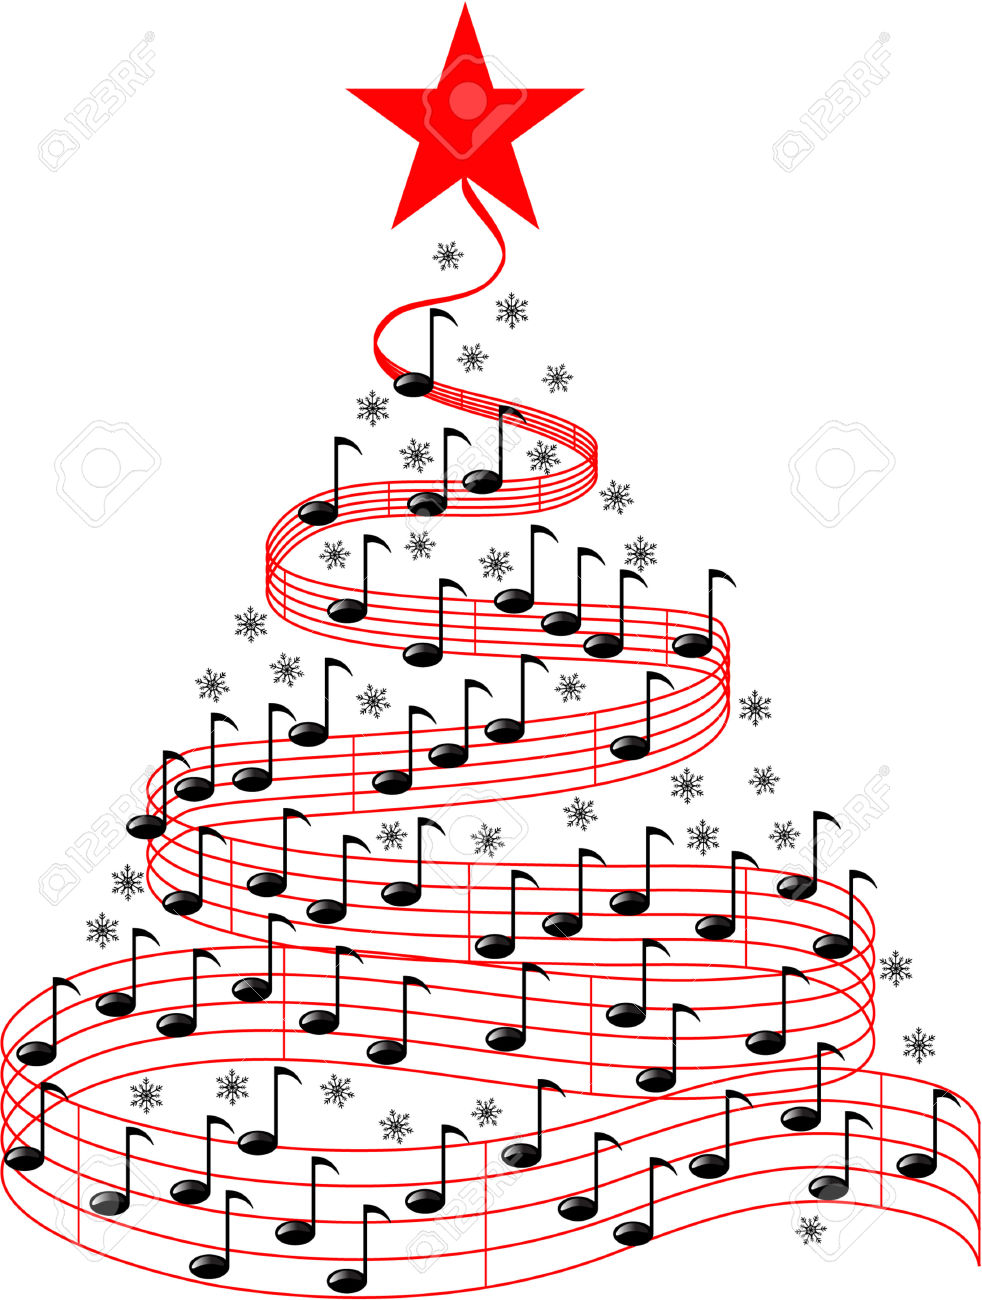 Christmas Music Notes.38 Christmas Music Clipart Clipartlook